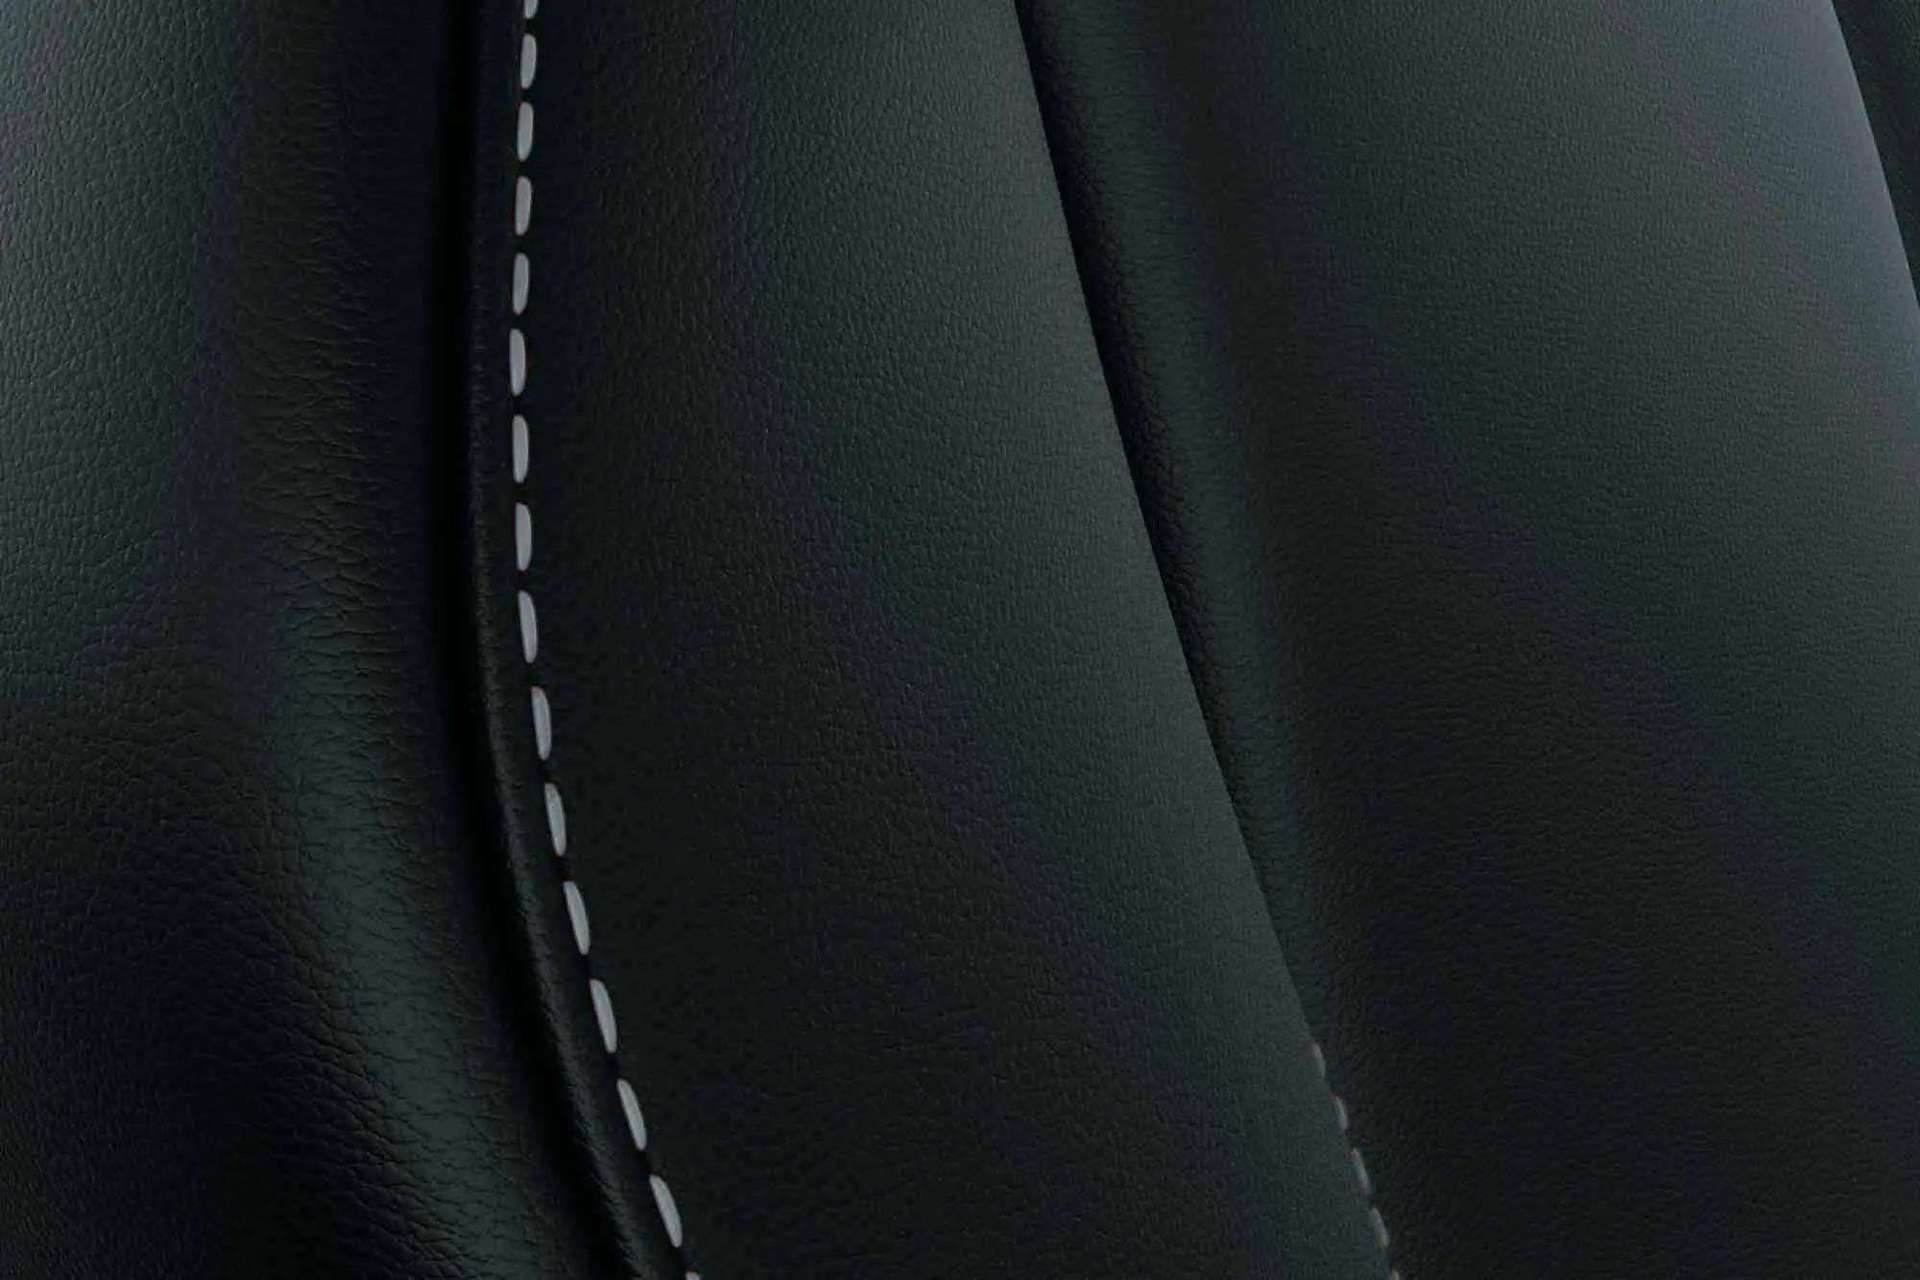 Stitched Leather Seats